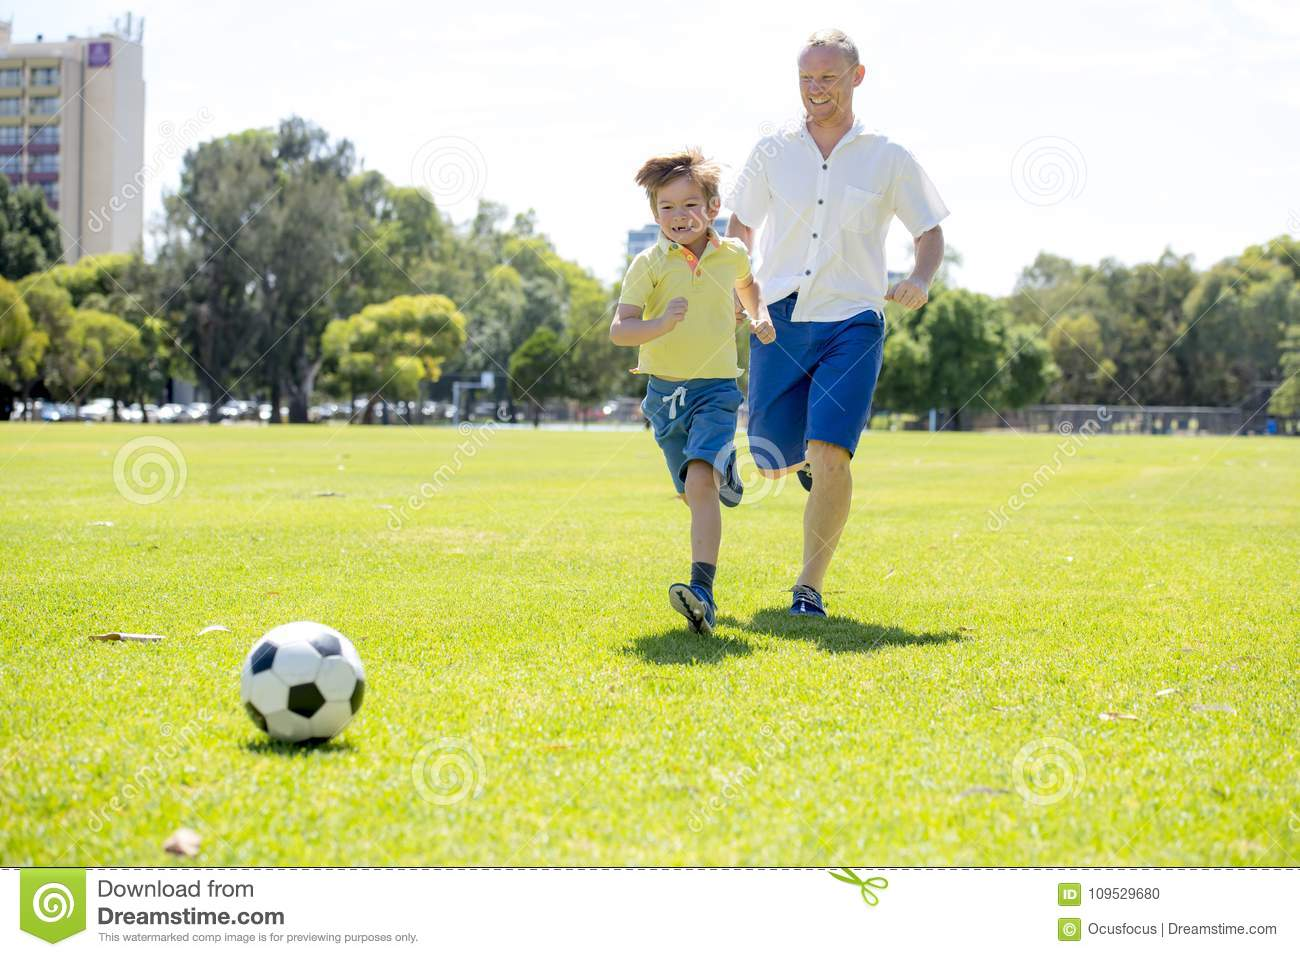 Young happy father and excited little 7 or 8 years old son playing together soccer football on city park garden running on grass k